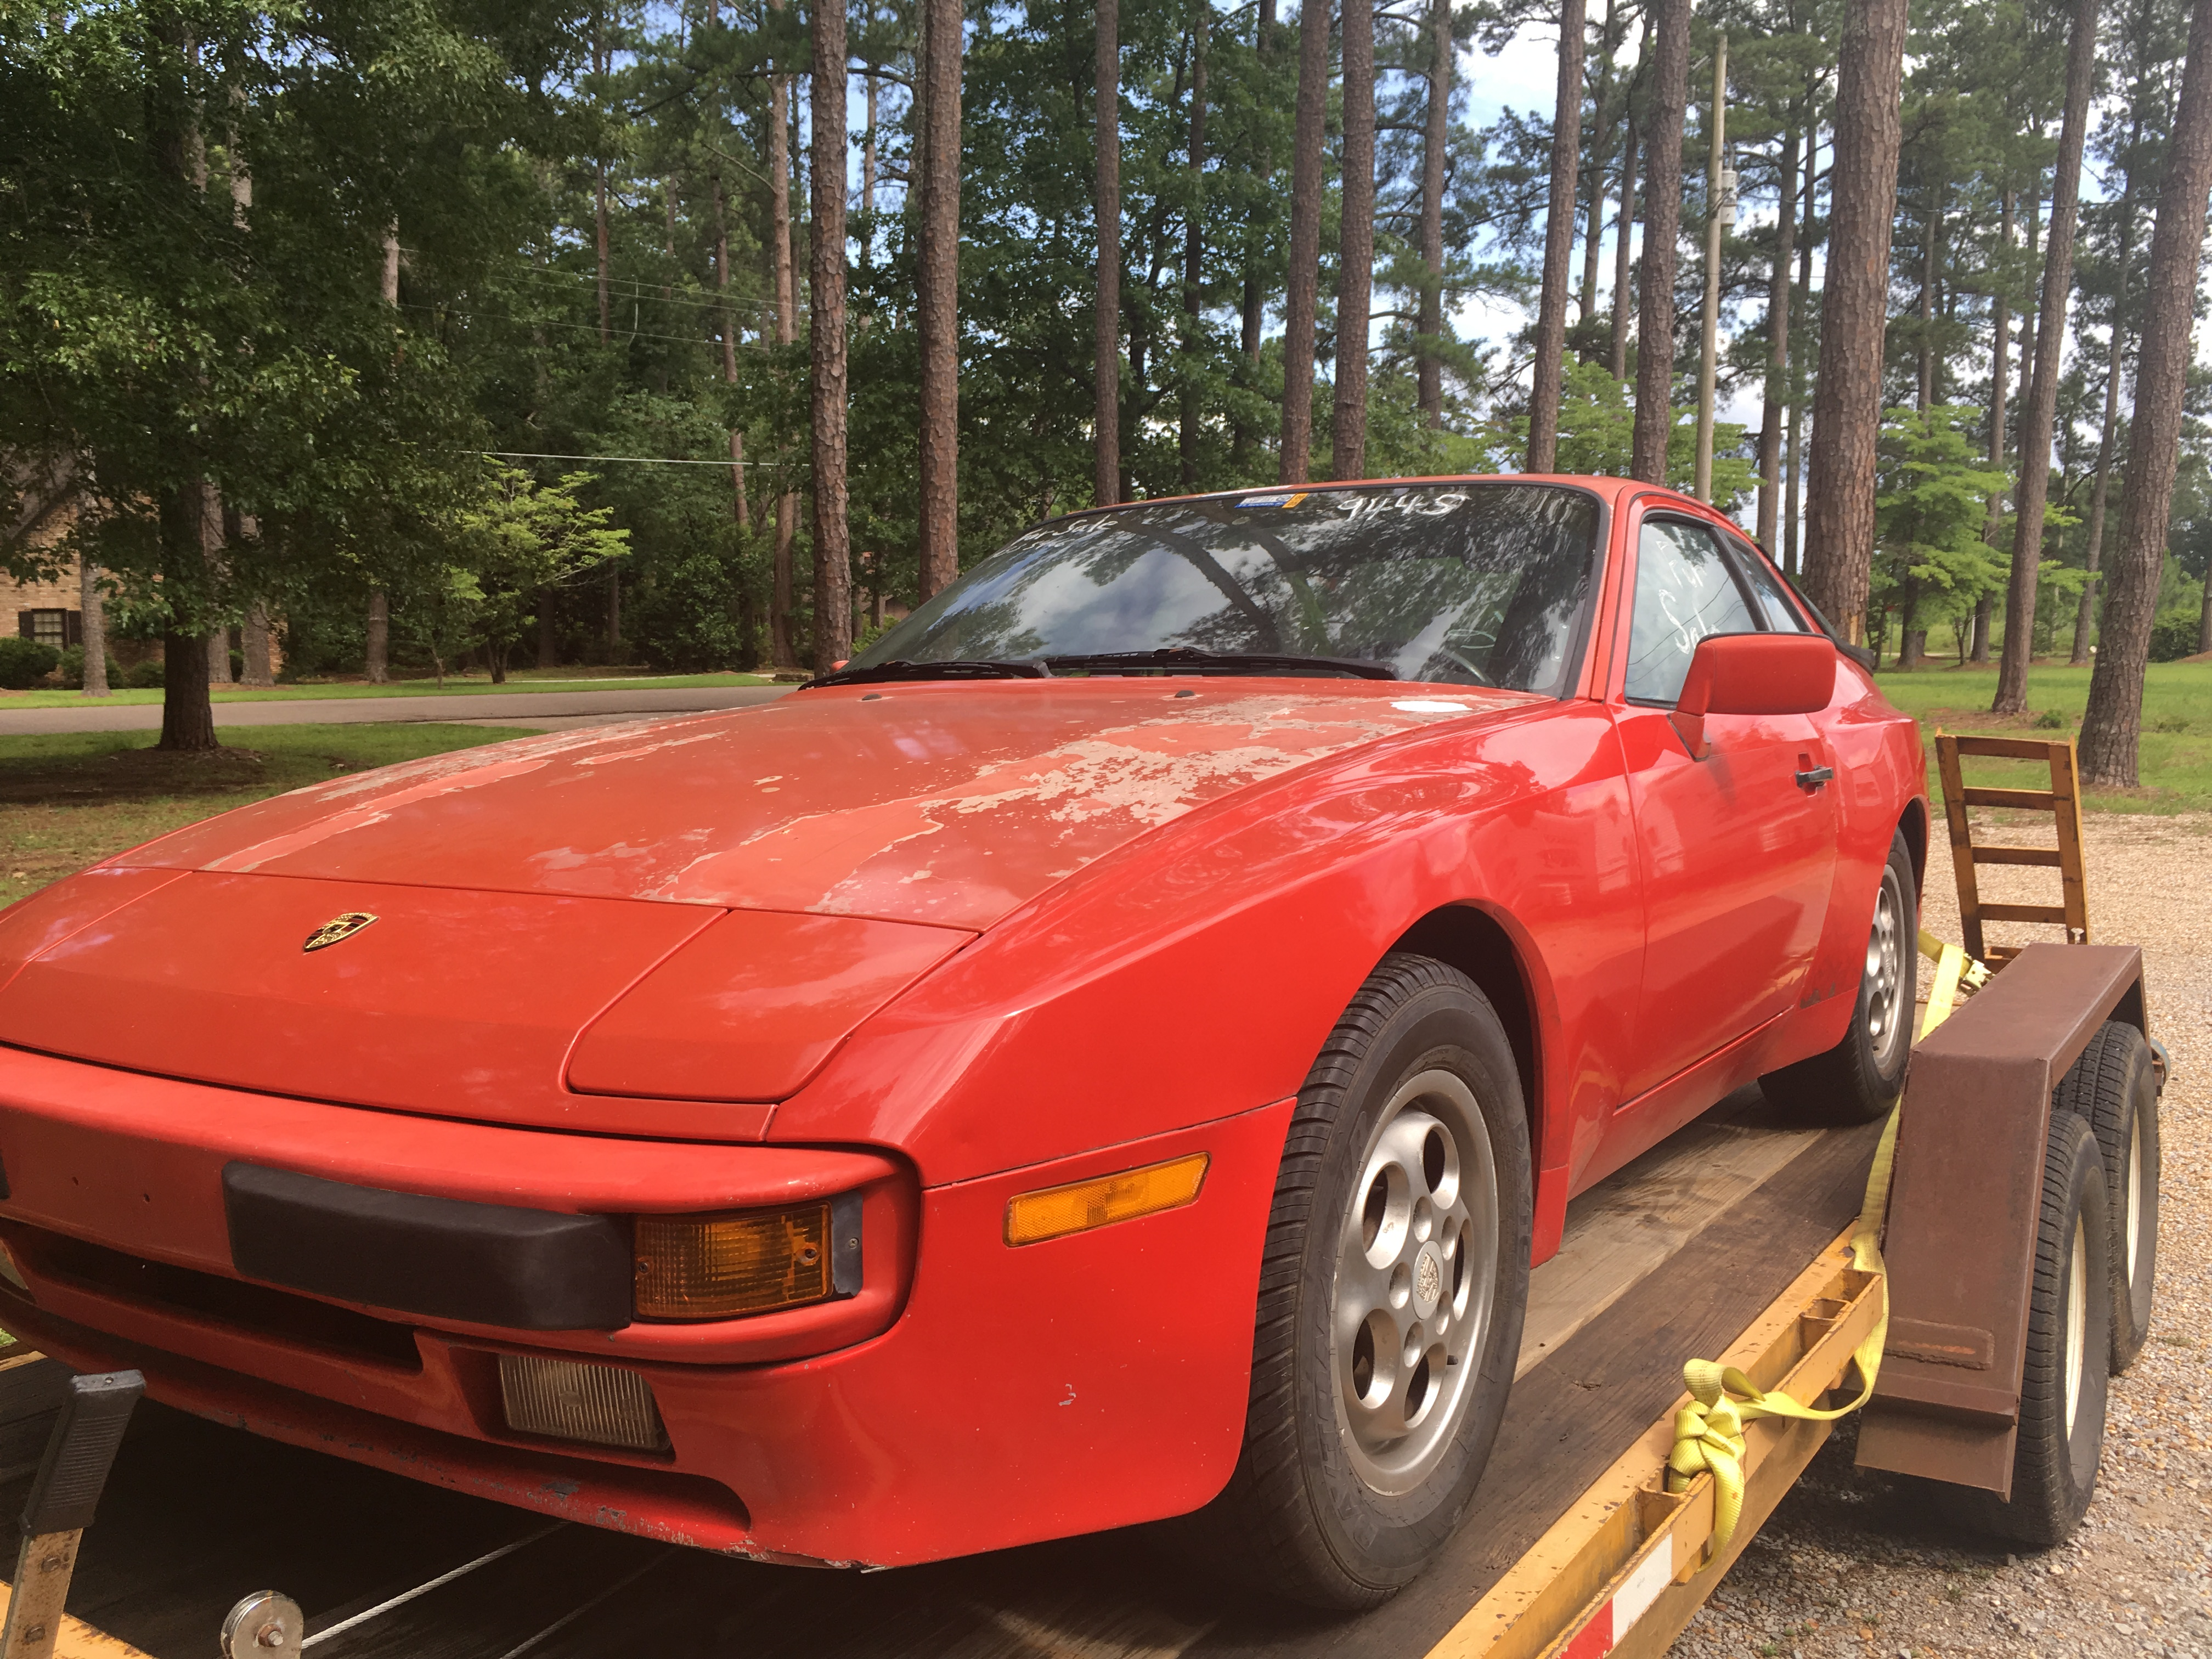 As The Owner Of A 1987 944s, I Believe It Is Triple The Fun Of A Miata Or  Track Car, Looks Like A Ferrari And Porsche Had A Child, And Is Very Nimble  And ...